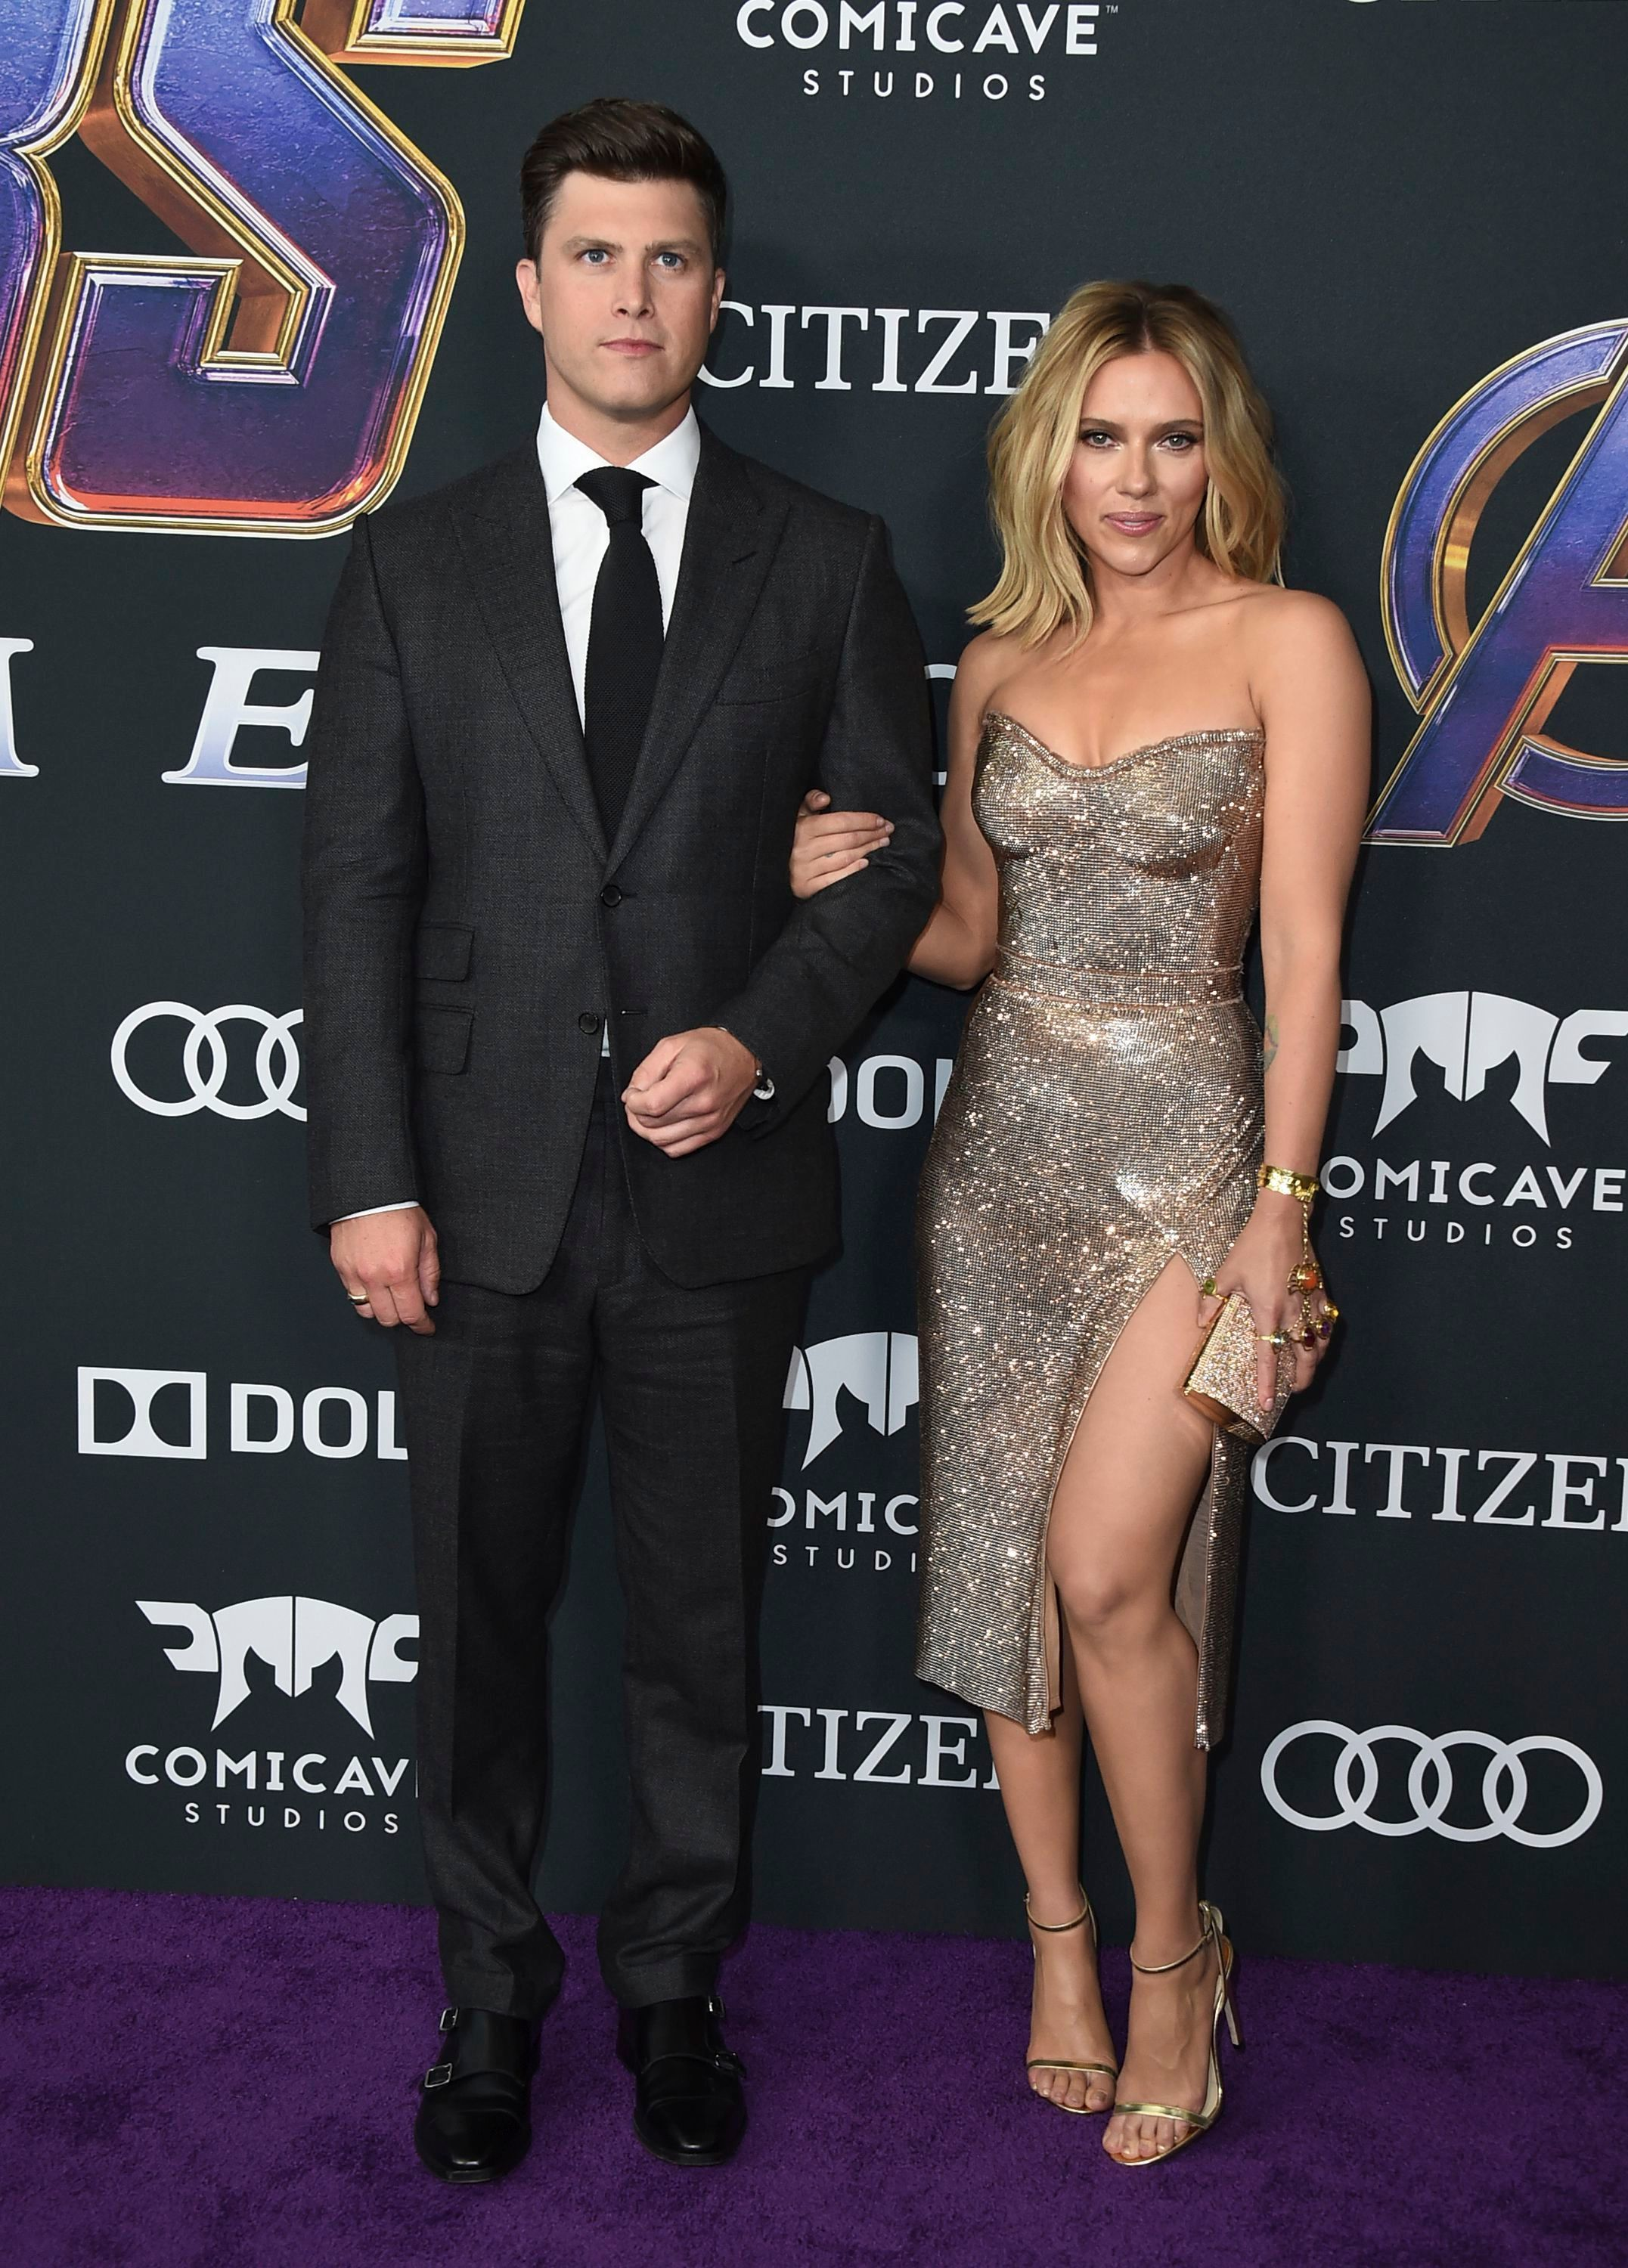 Scarlett Johansson and Colin Jost are engaged, plus more celeb love life news for mid-May 2019